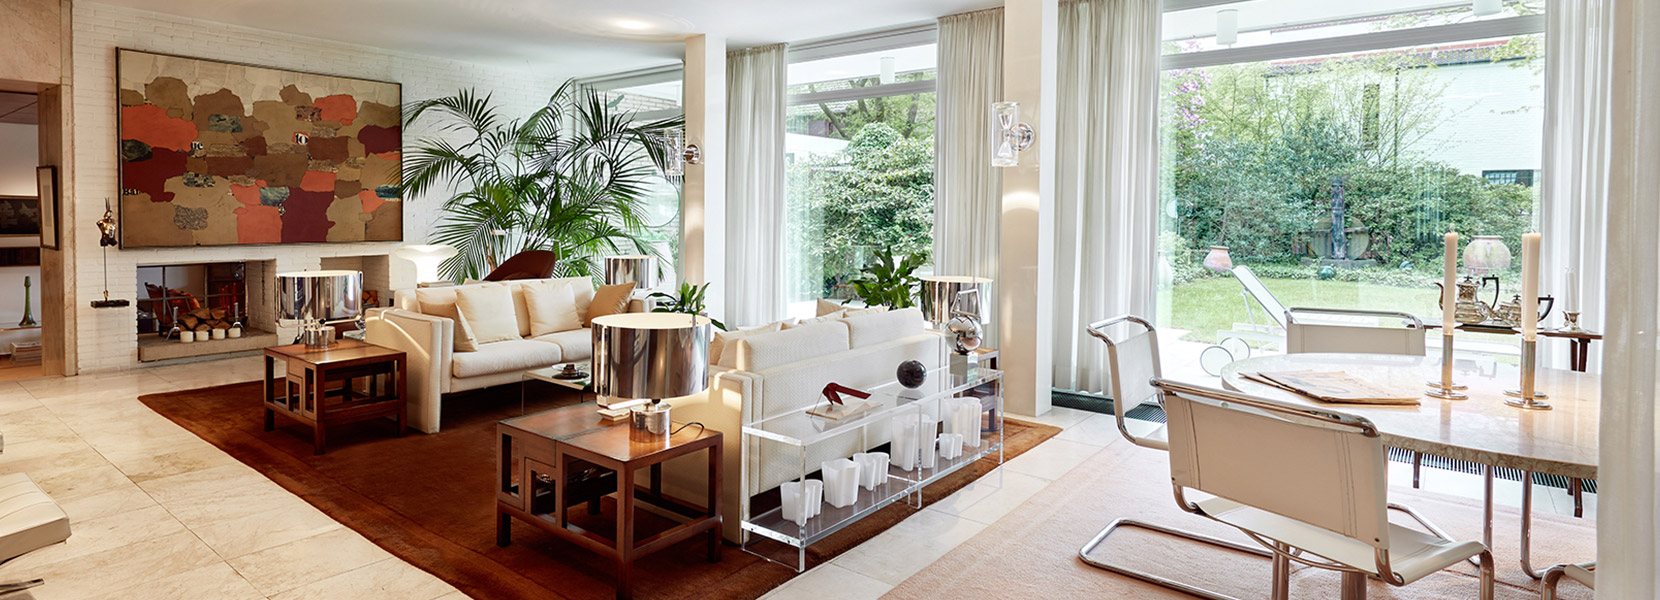 Homestaging mit Gille Immobilien